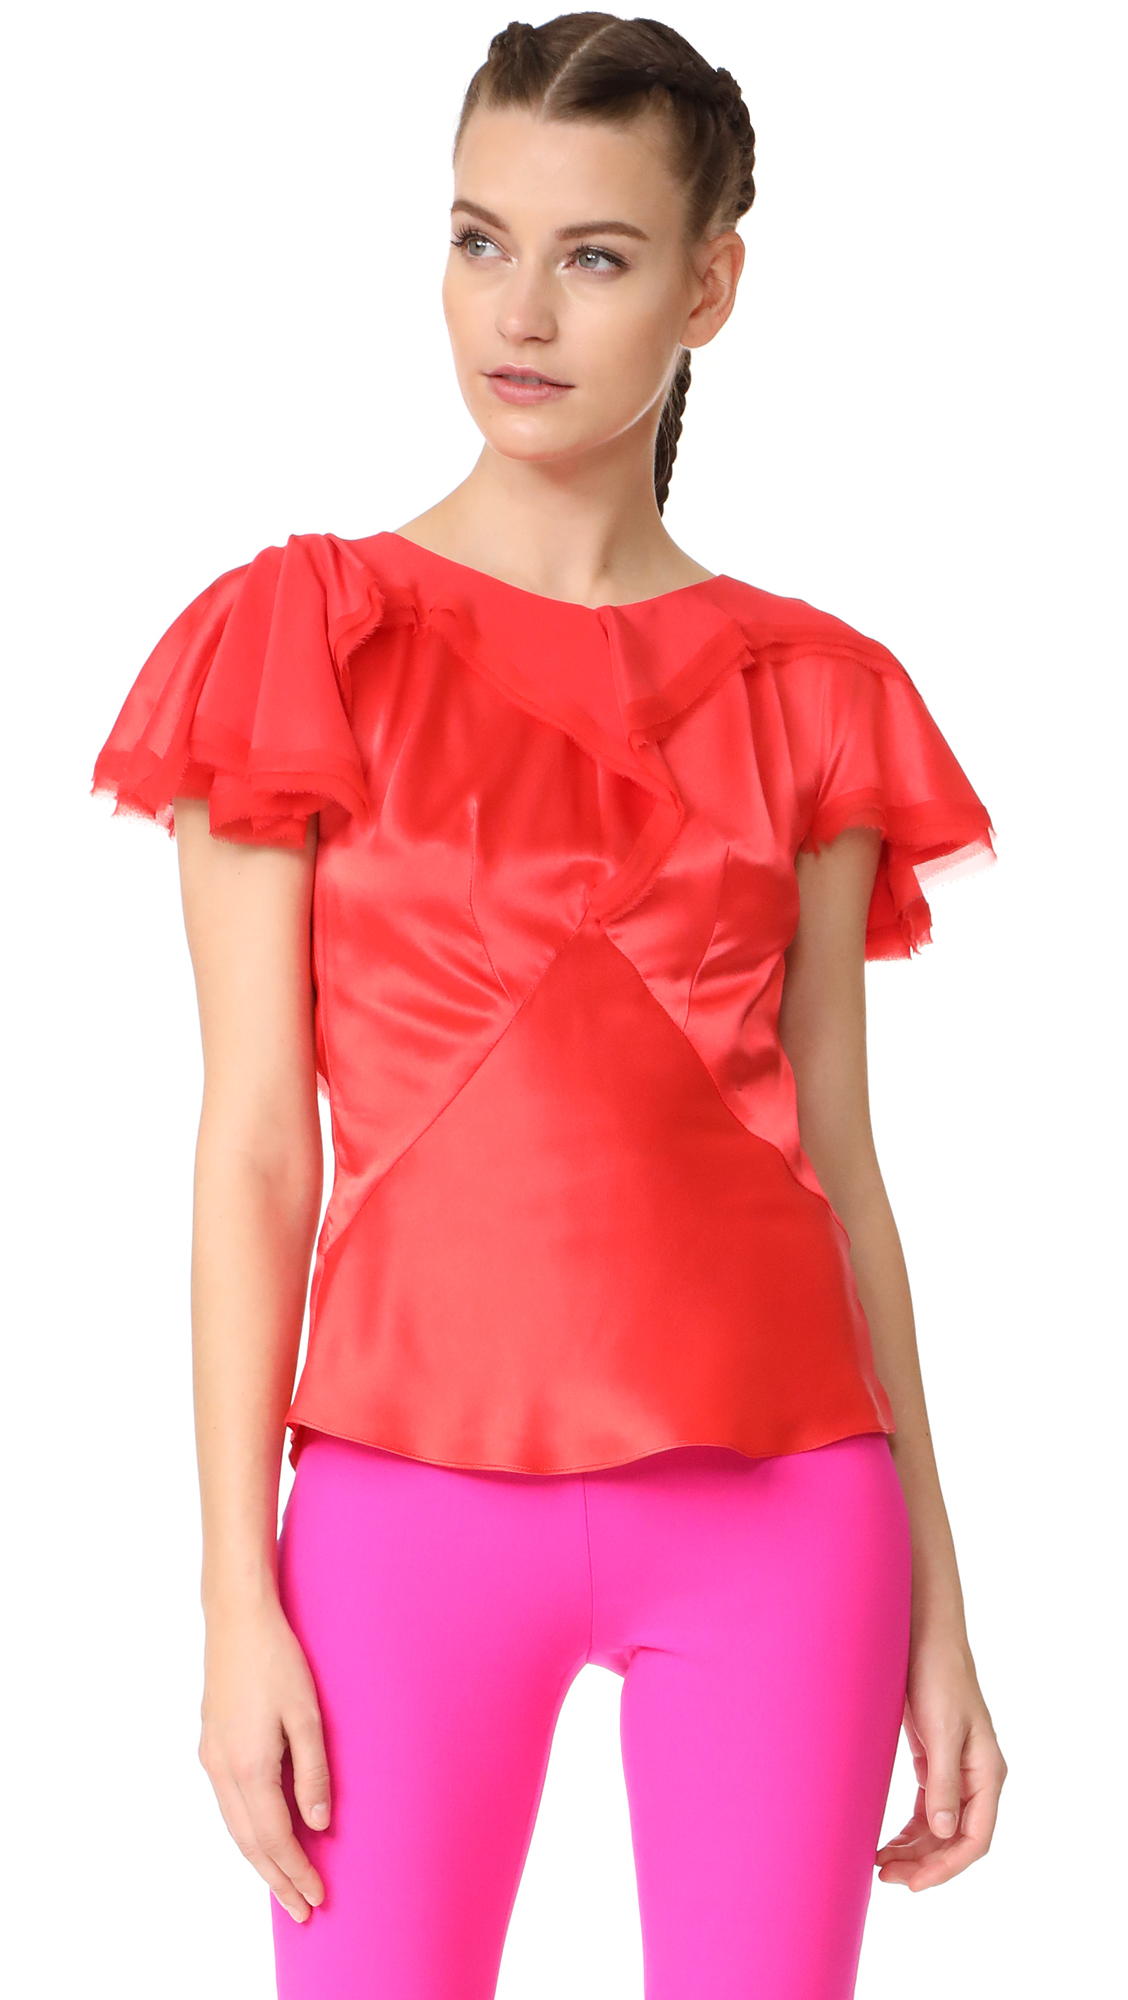 Zac Posen Short Sleeve Blouse - Coral